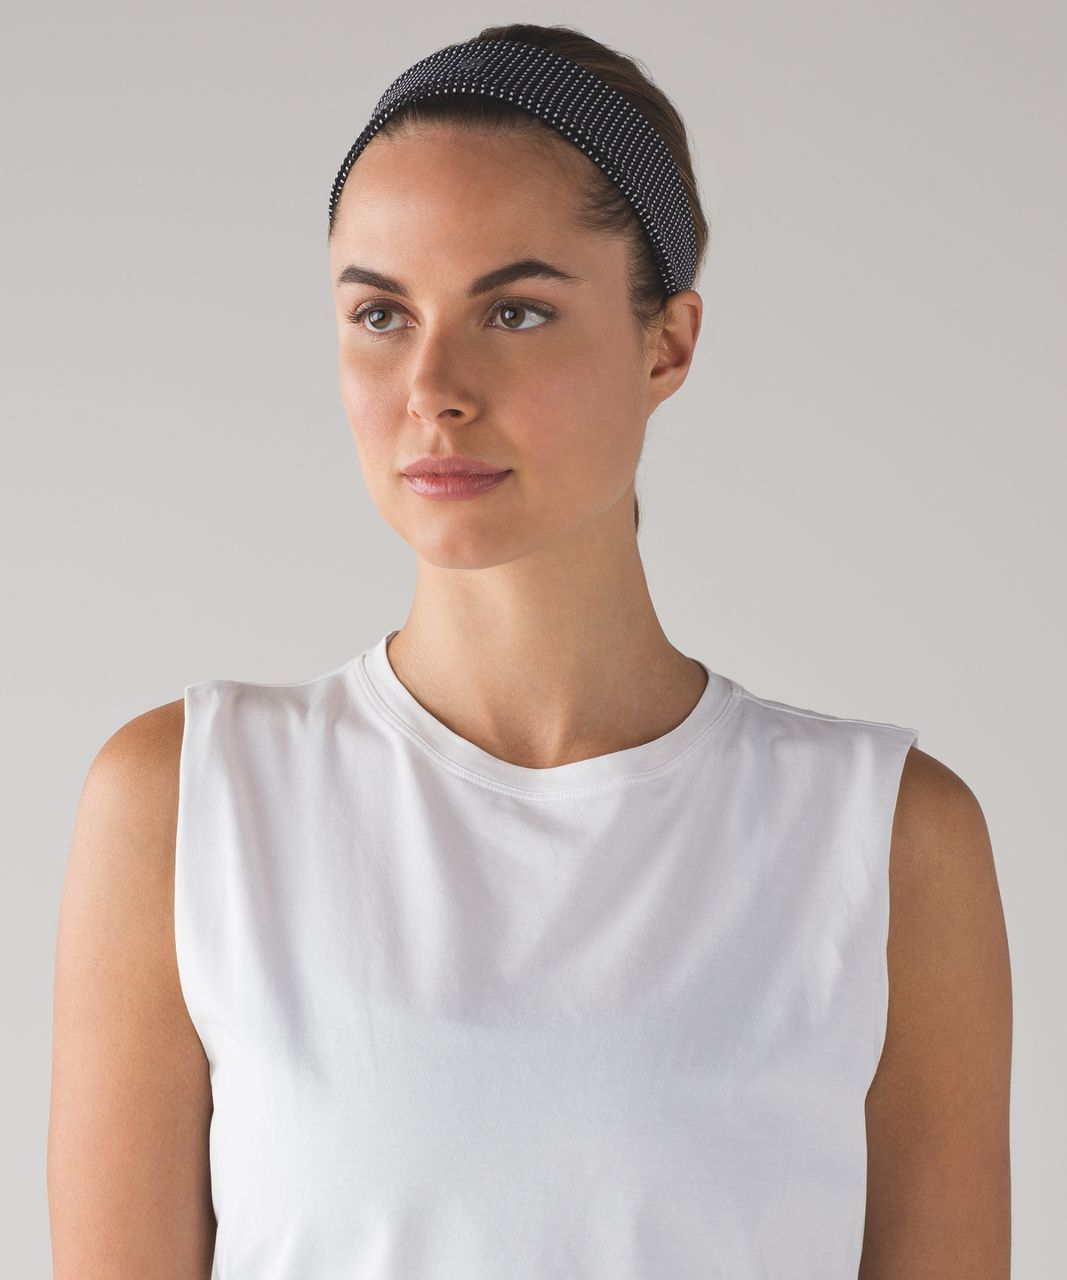 Lululemon Fly Away Tamer Headband II - Teeny Check White Black